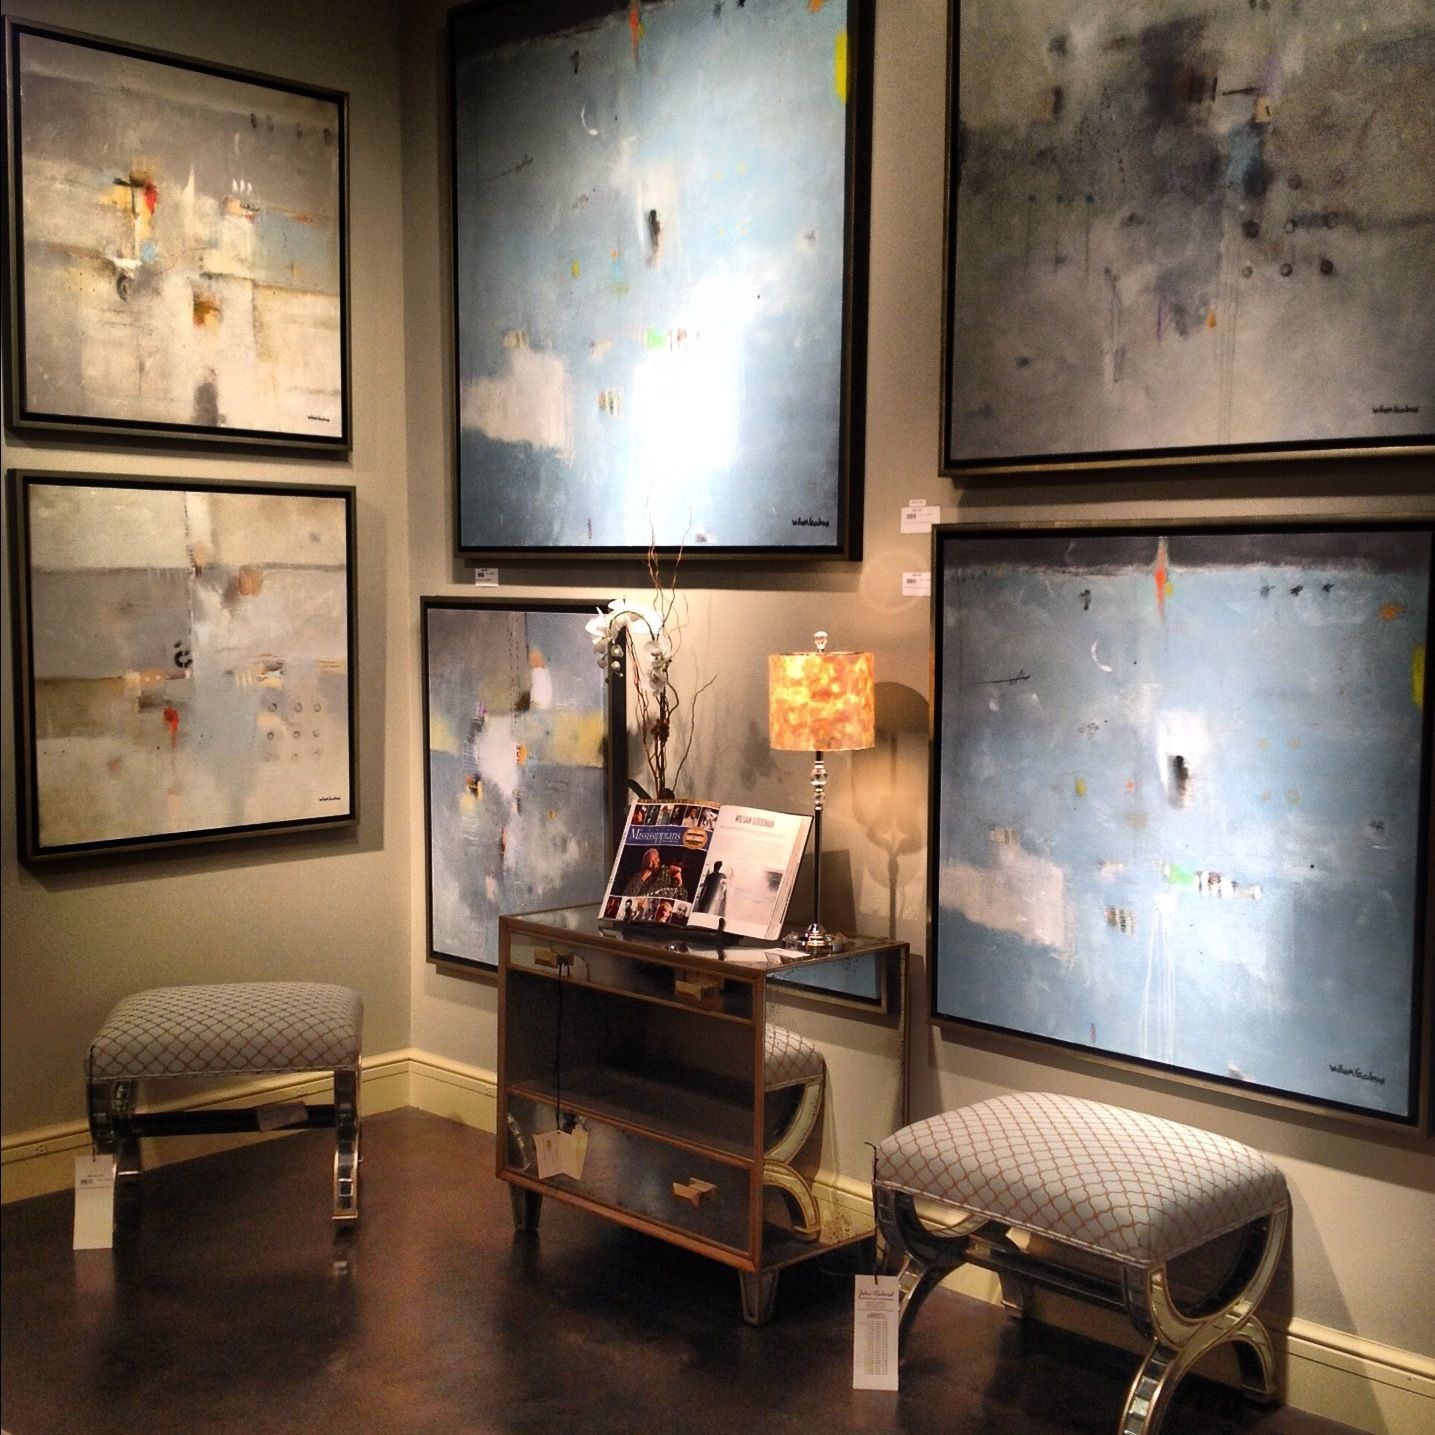 Unique Mixed Media Works By Our Featured Artist, Jackson, MS Based William  Goodman.